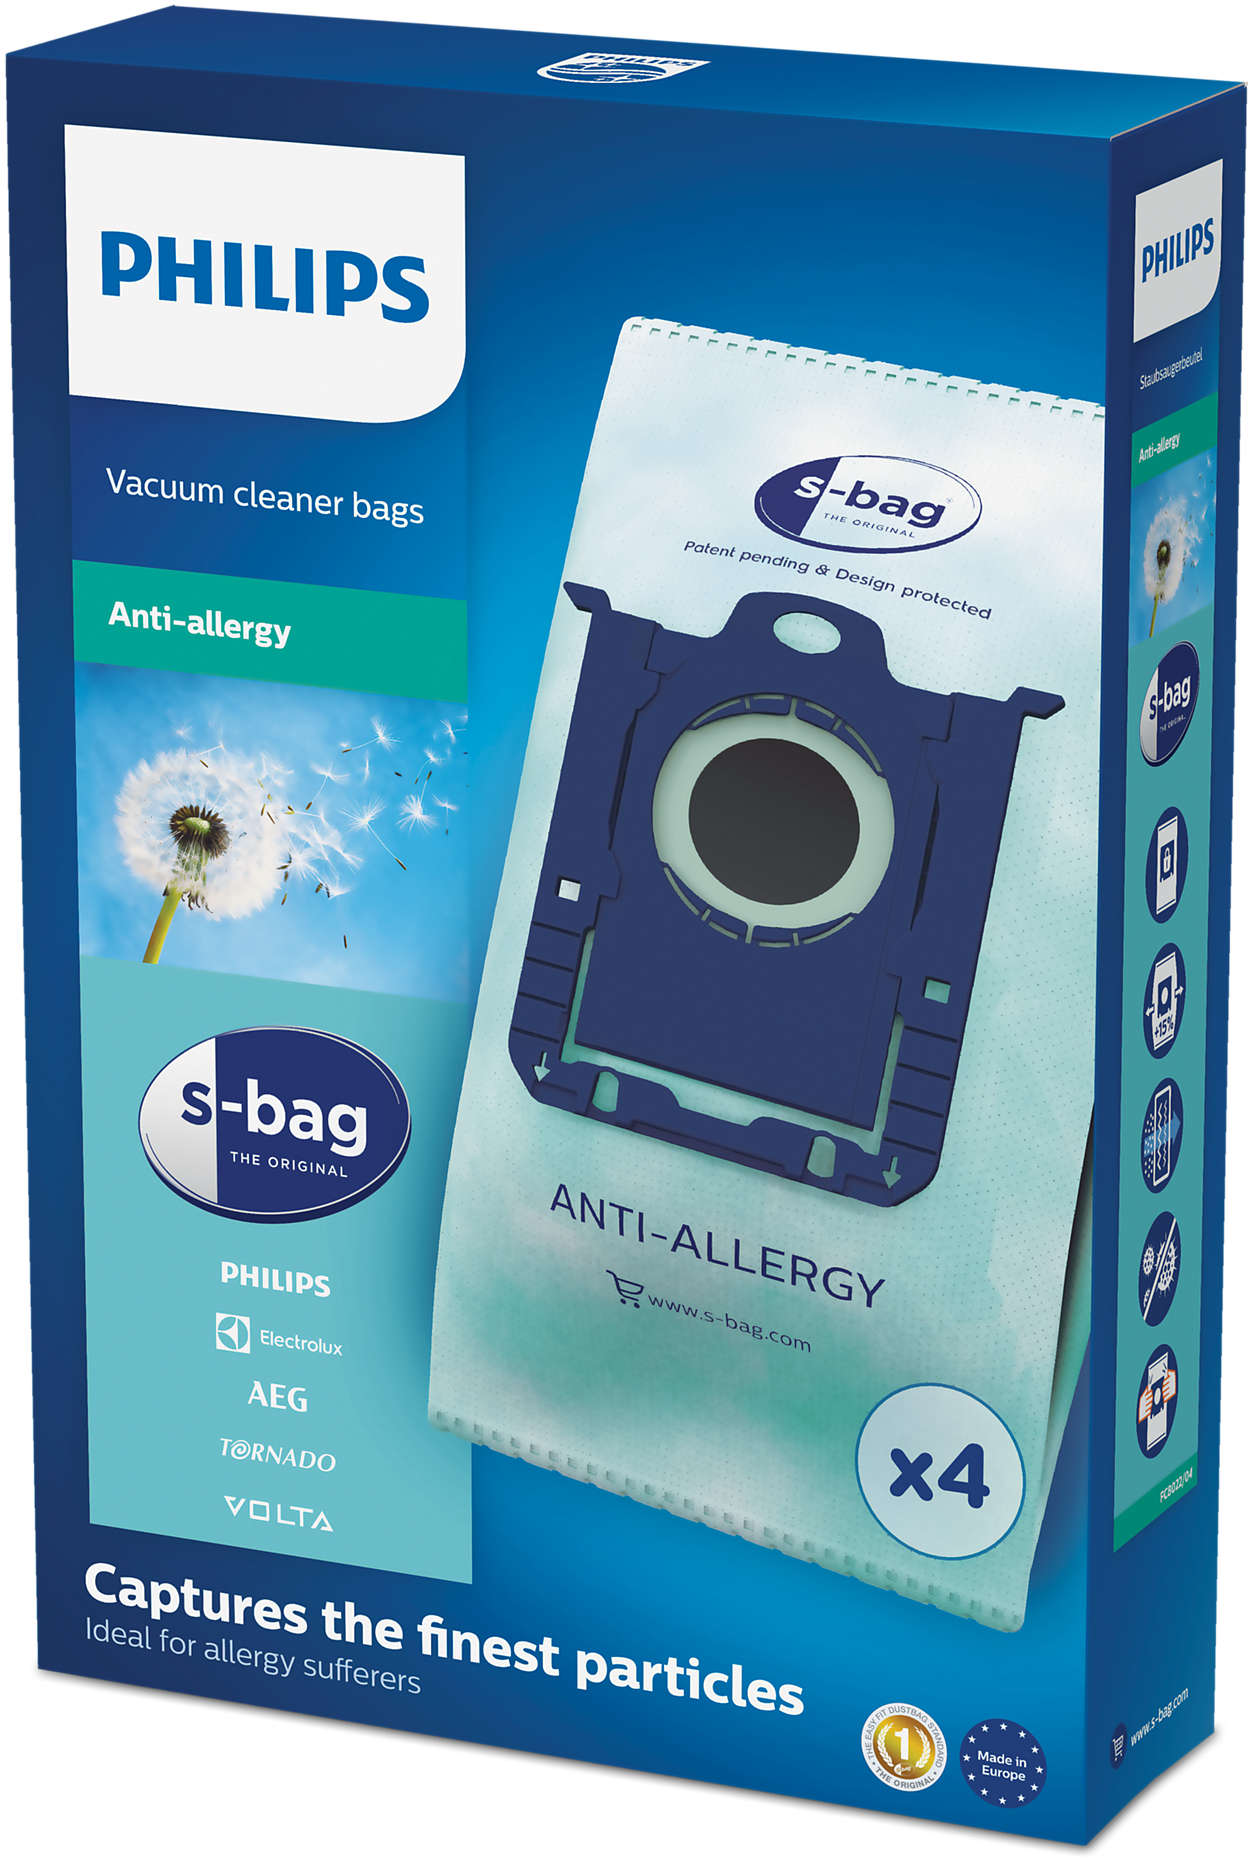 s-bag® Anti-Allergy